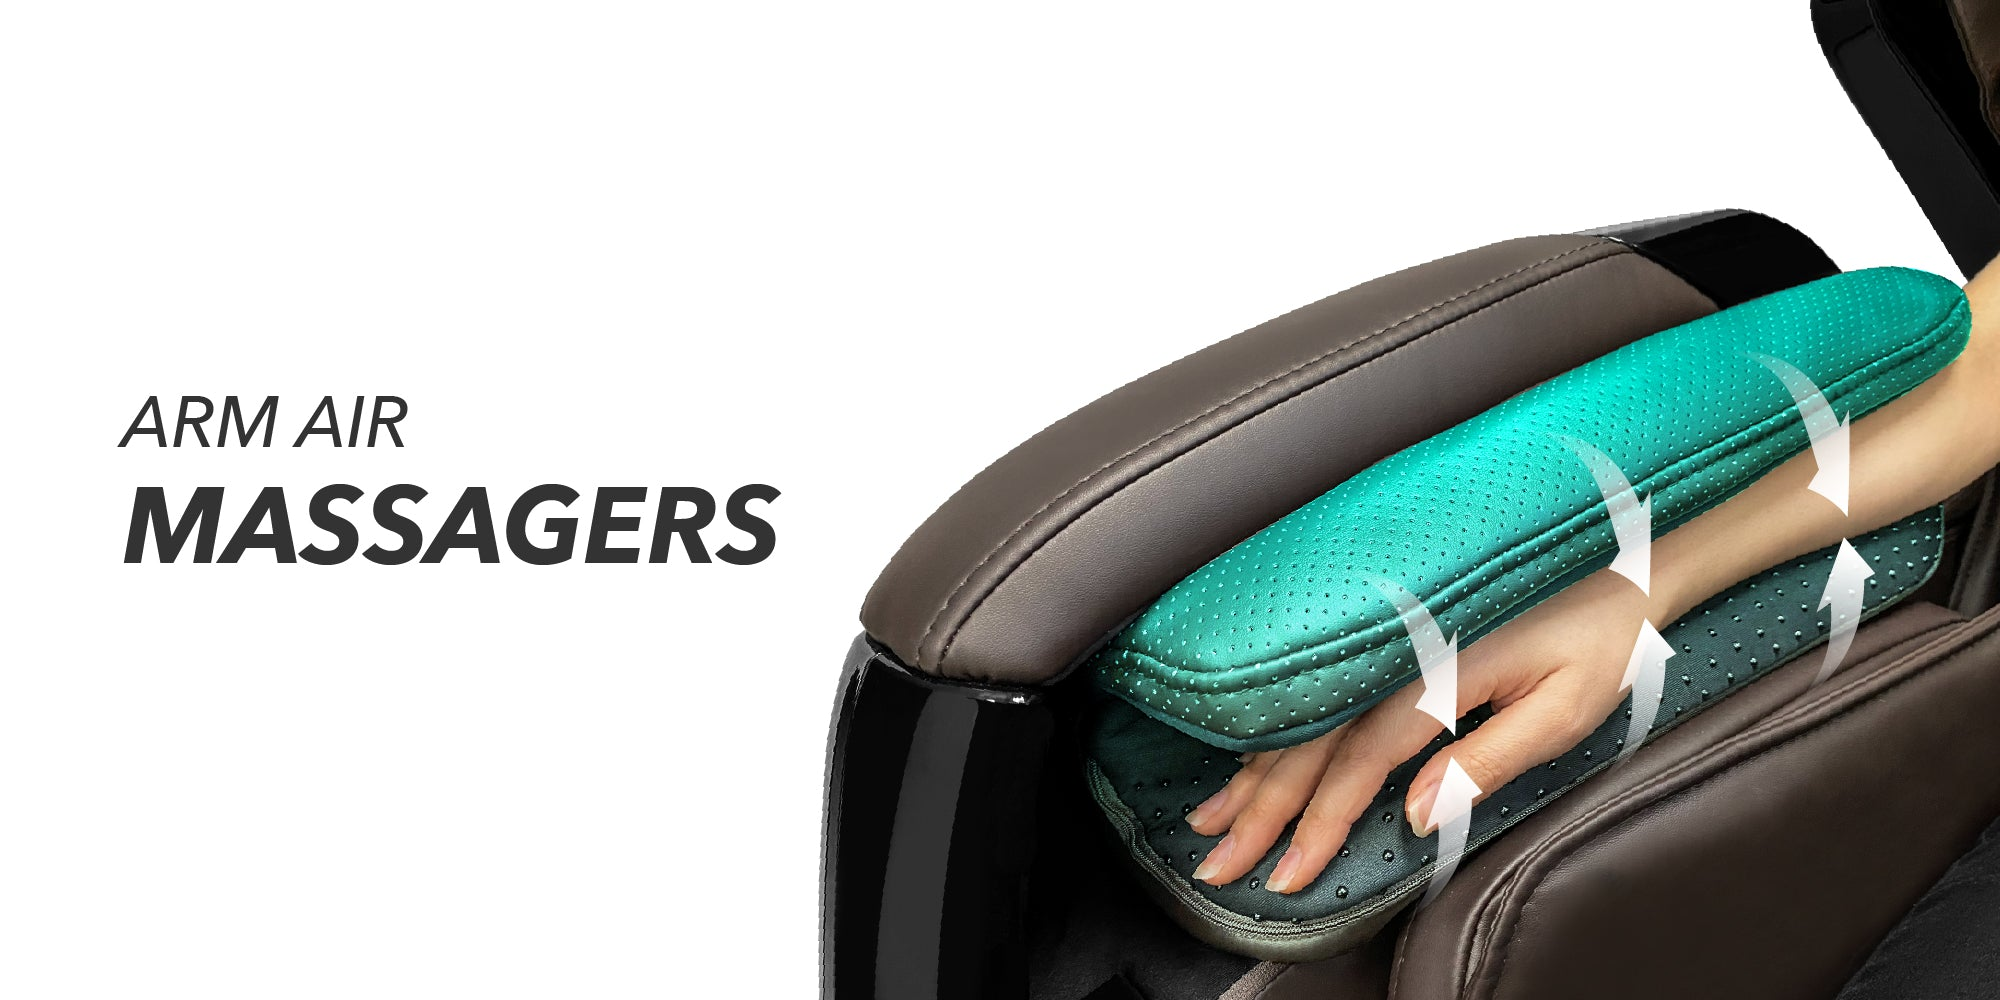 Arm air massagers